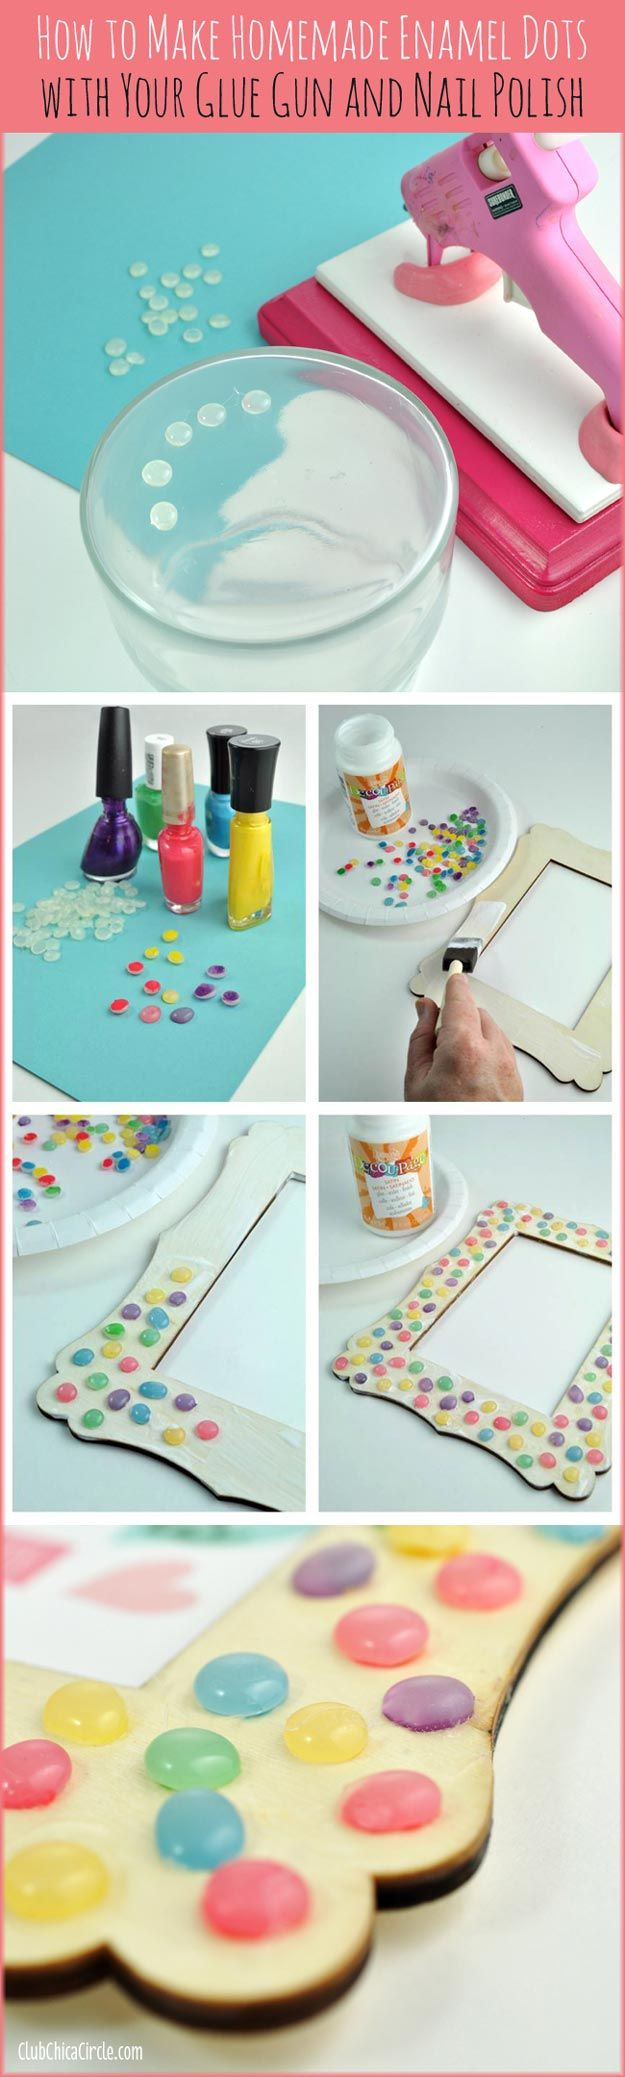 Fun Crafts To Do With A Hot Glue Gun | Best Hot Glue Gun Crafts, DIY Projects and Arts and Crafts Ideas Using Glue Gun Sticks | Home Made Enamel Dots With Your Glue Gun and Nail Polish | http://diyjoy.com/hot-glue-gun-crafts-ideas